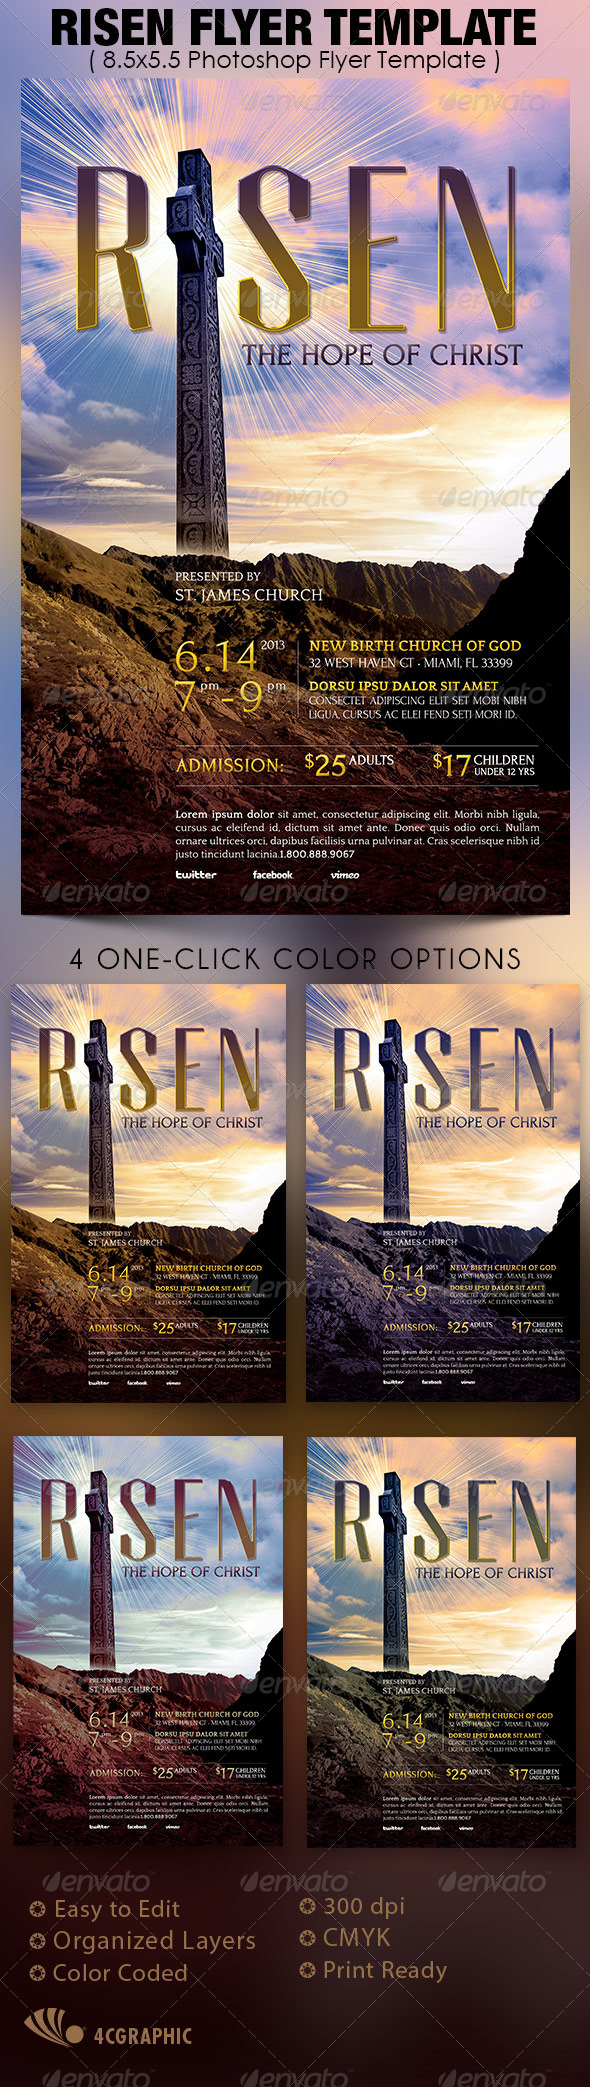 Risen Church Flyer Template - Church Flyers